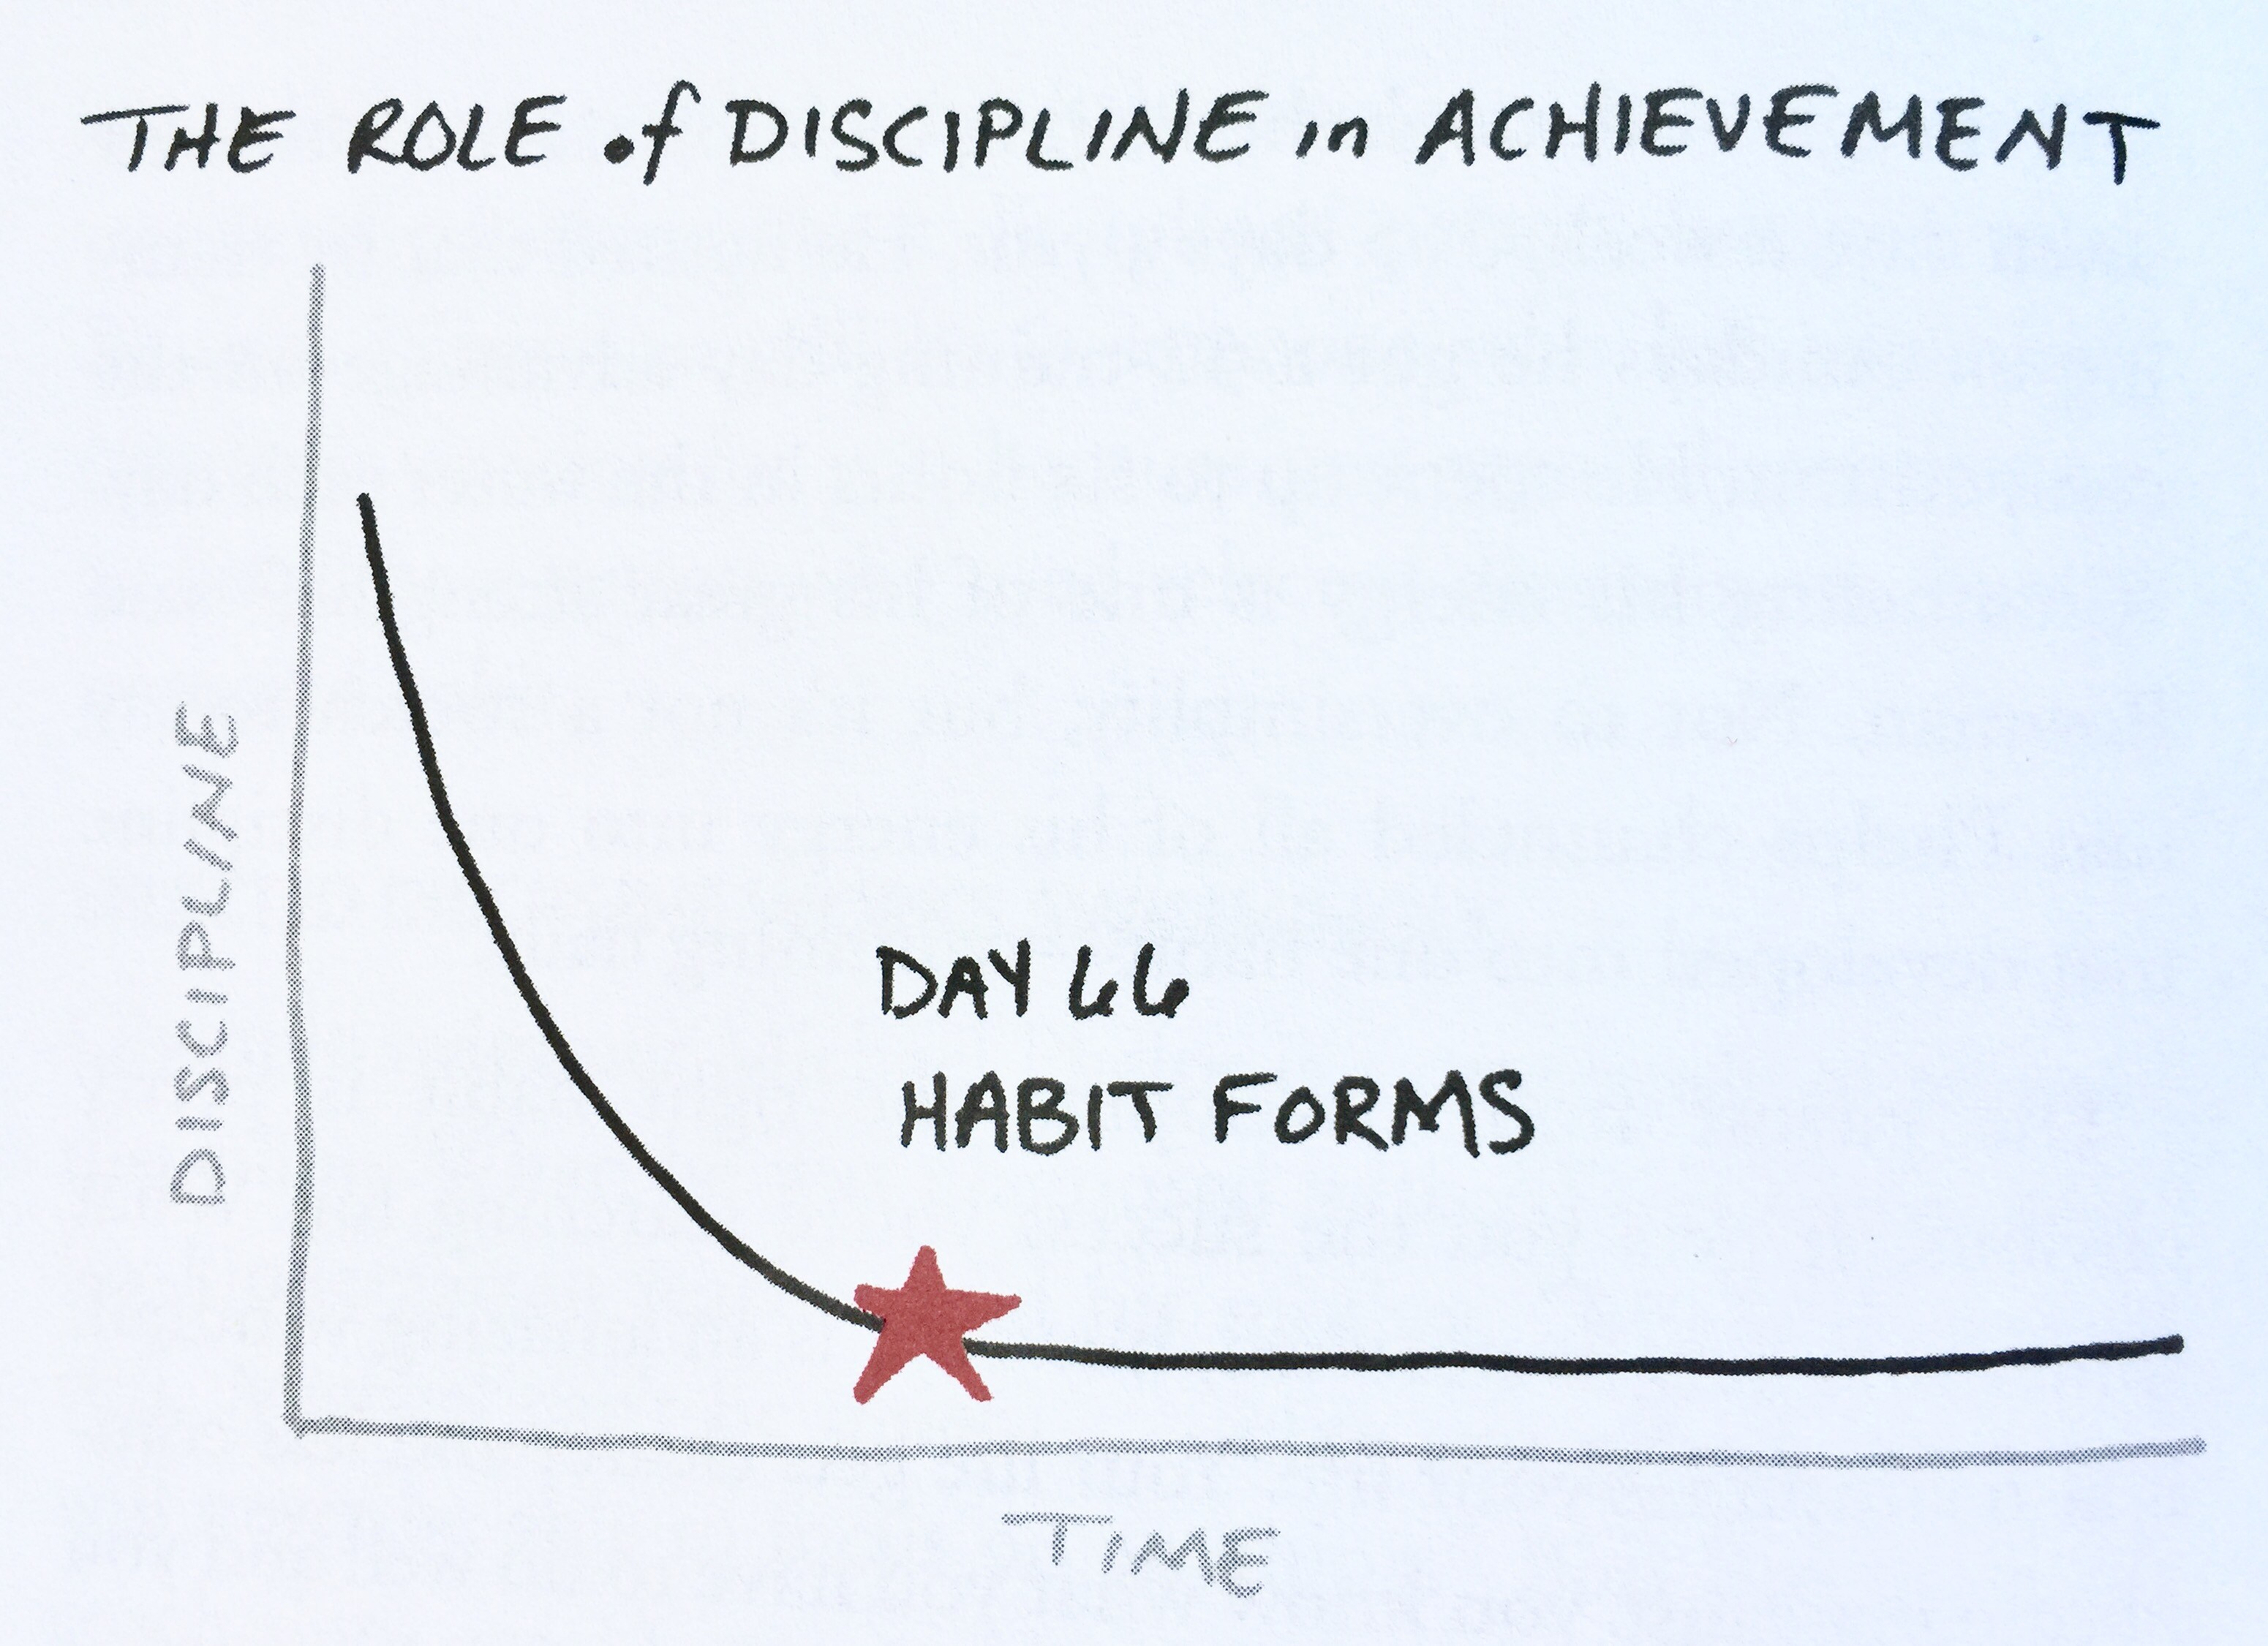 Figure 1: Discipline of Habit Formation